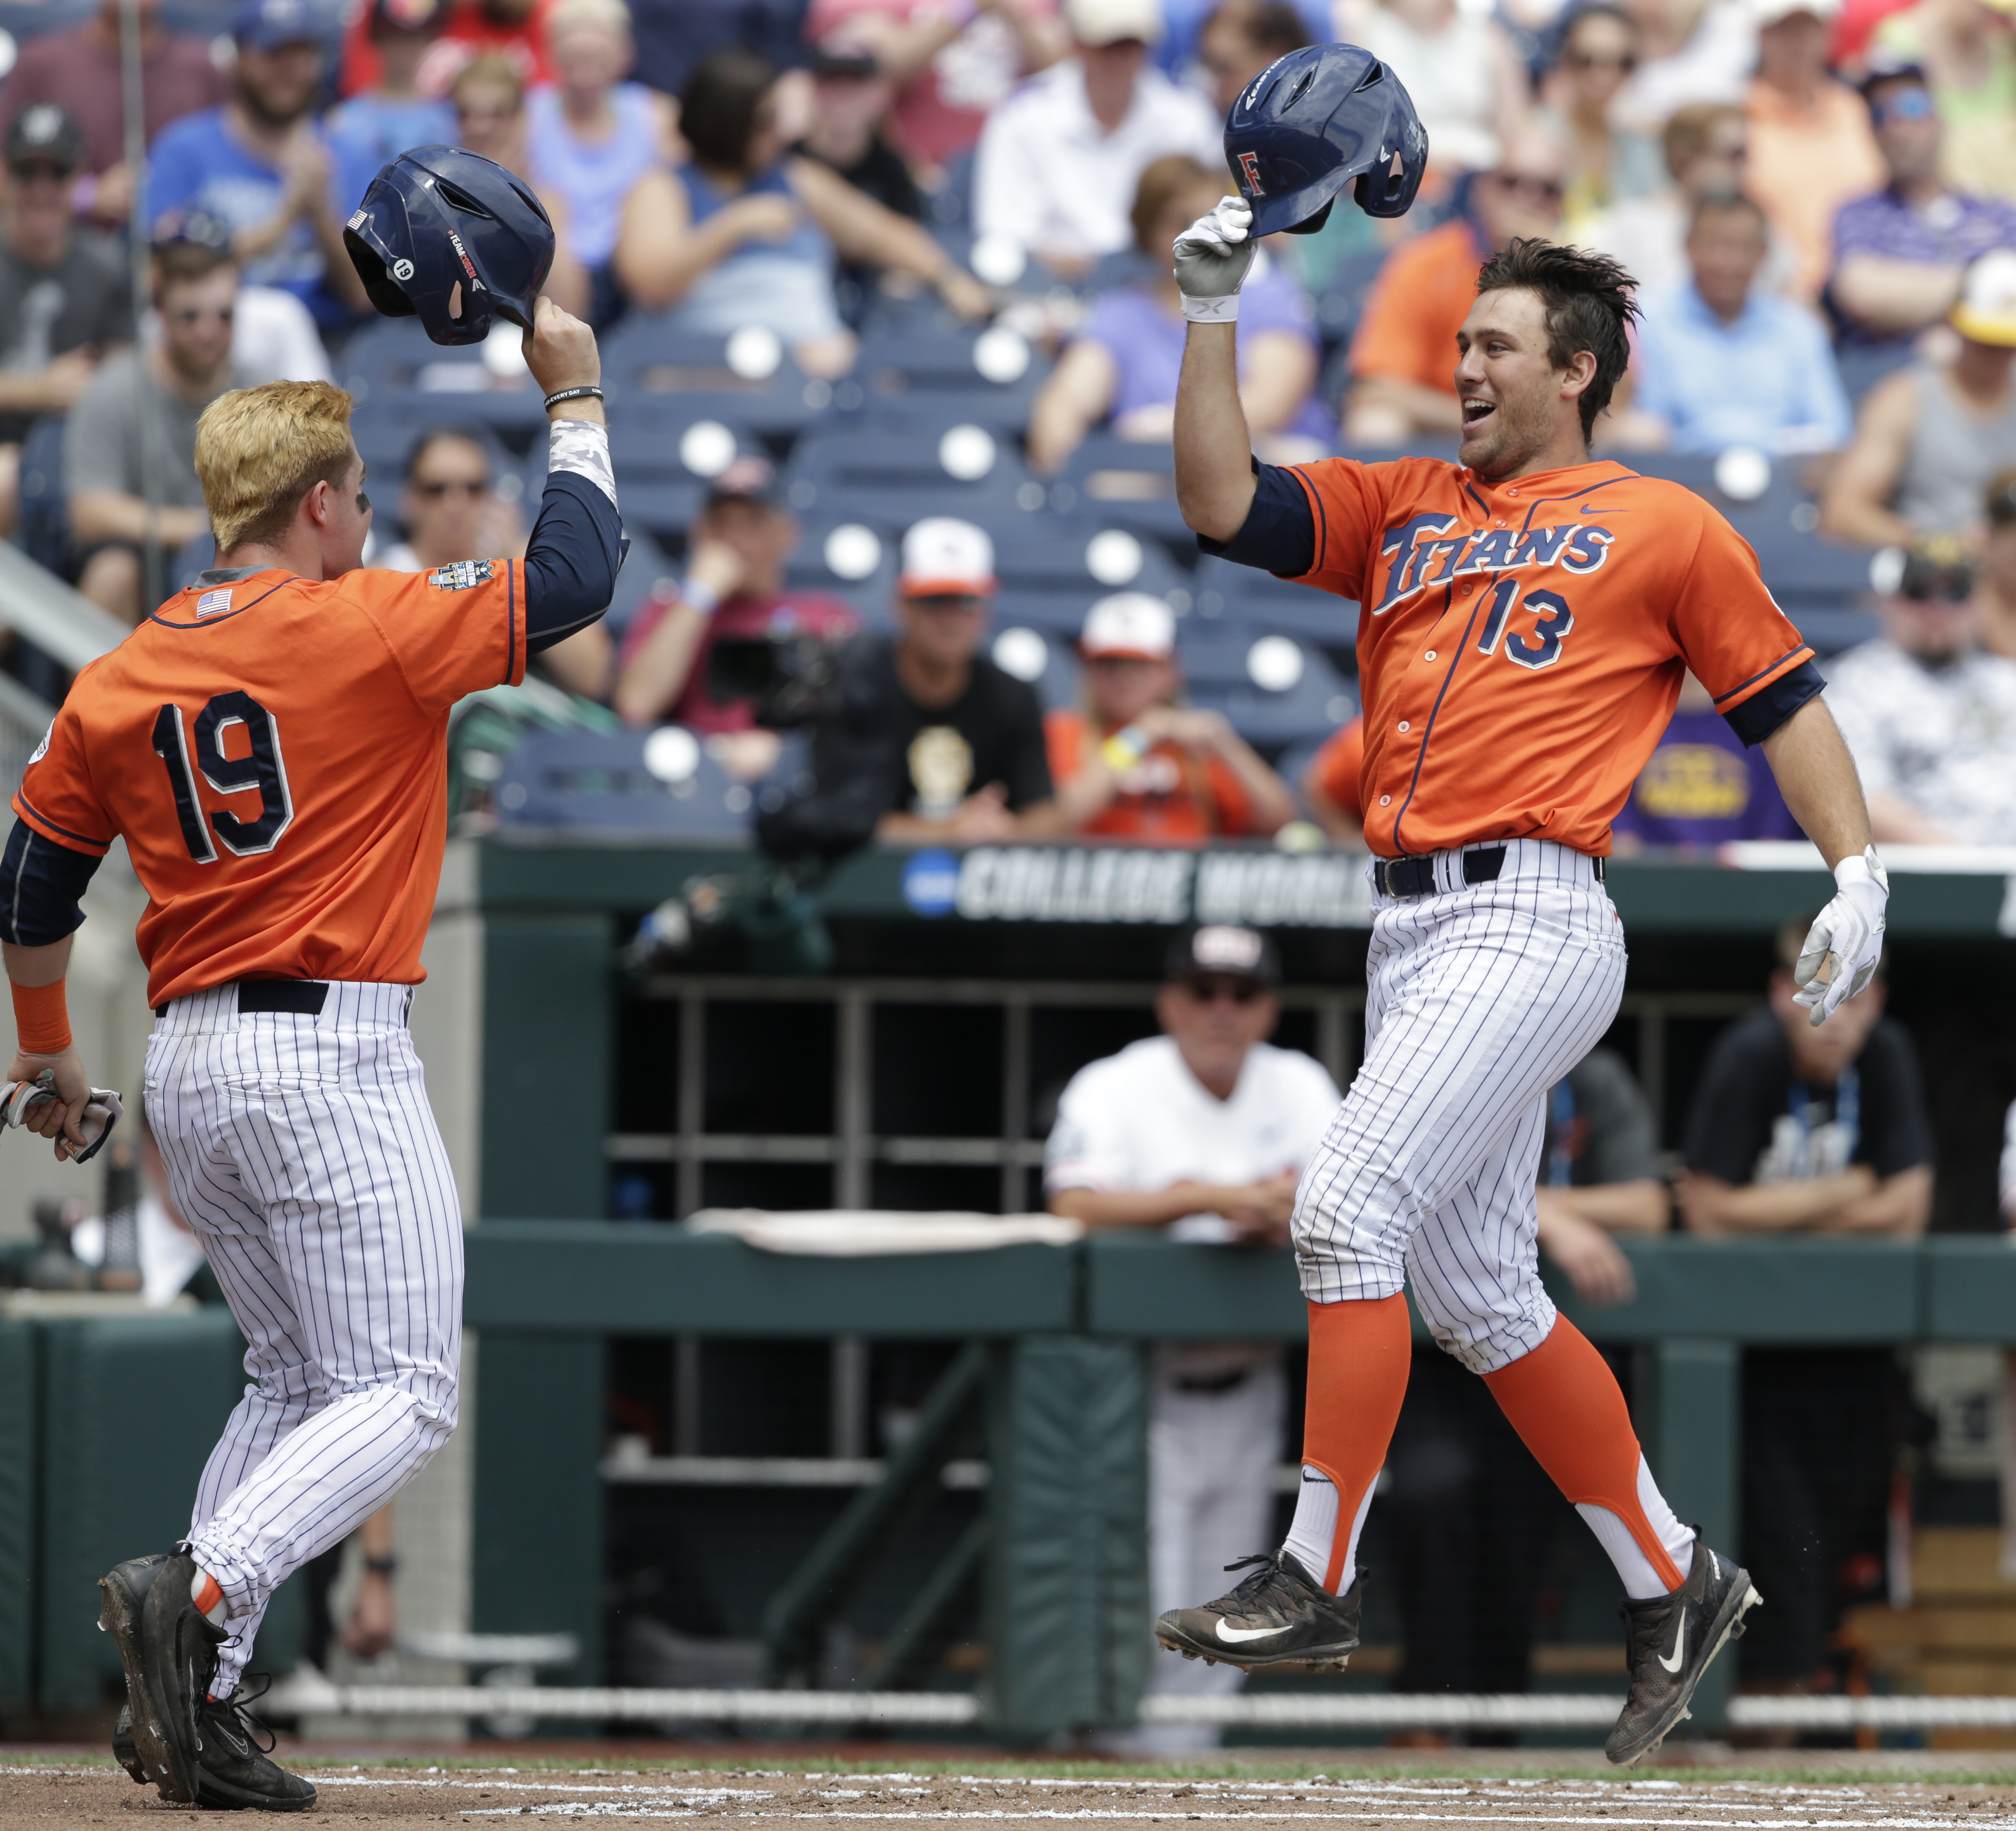 Cal State Fullerton's Timmy Richards (13) celebrates with Dillon Persinger (19) after his three-run home run in the first inning of an NCAA mens College World Series baseball game against Oregon State in Omaha, Neb., Saturday, June 17, 2017. (AP Photo/Nati Harnik)